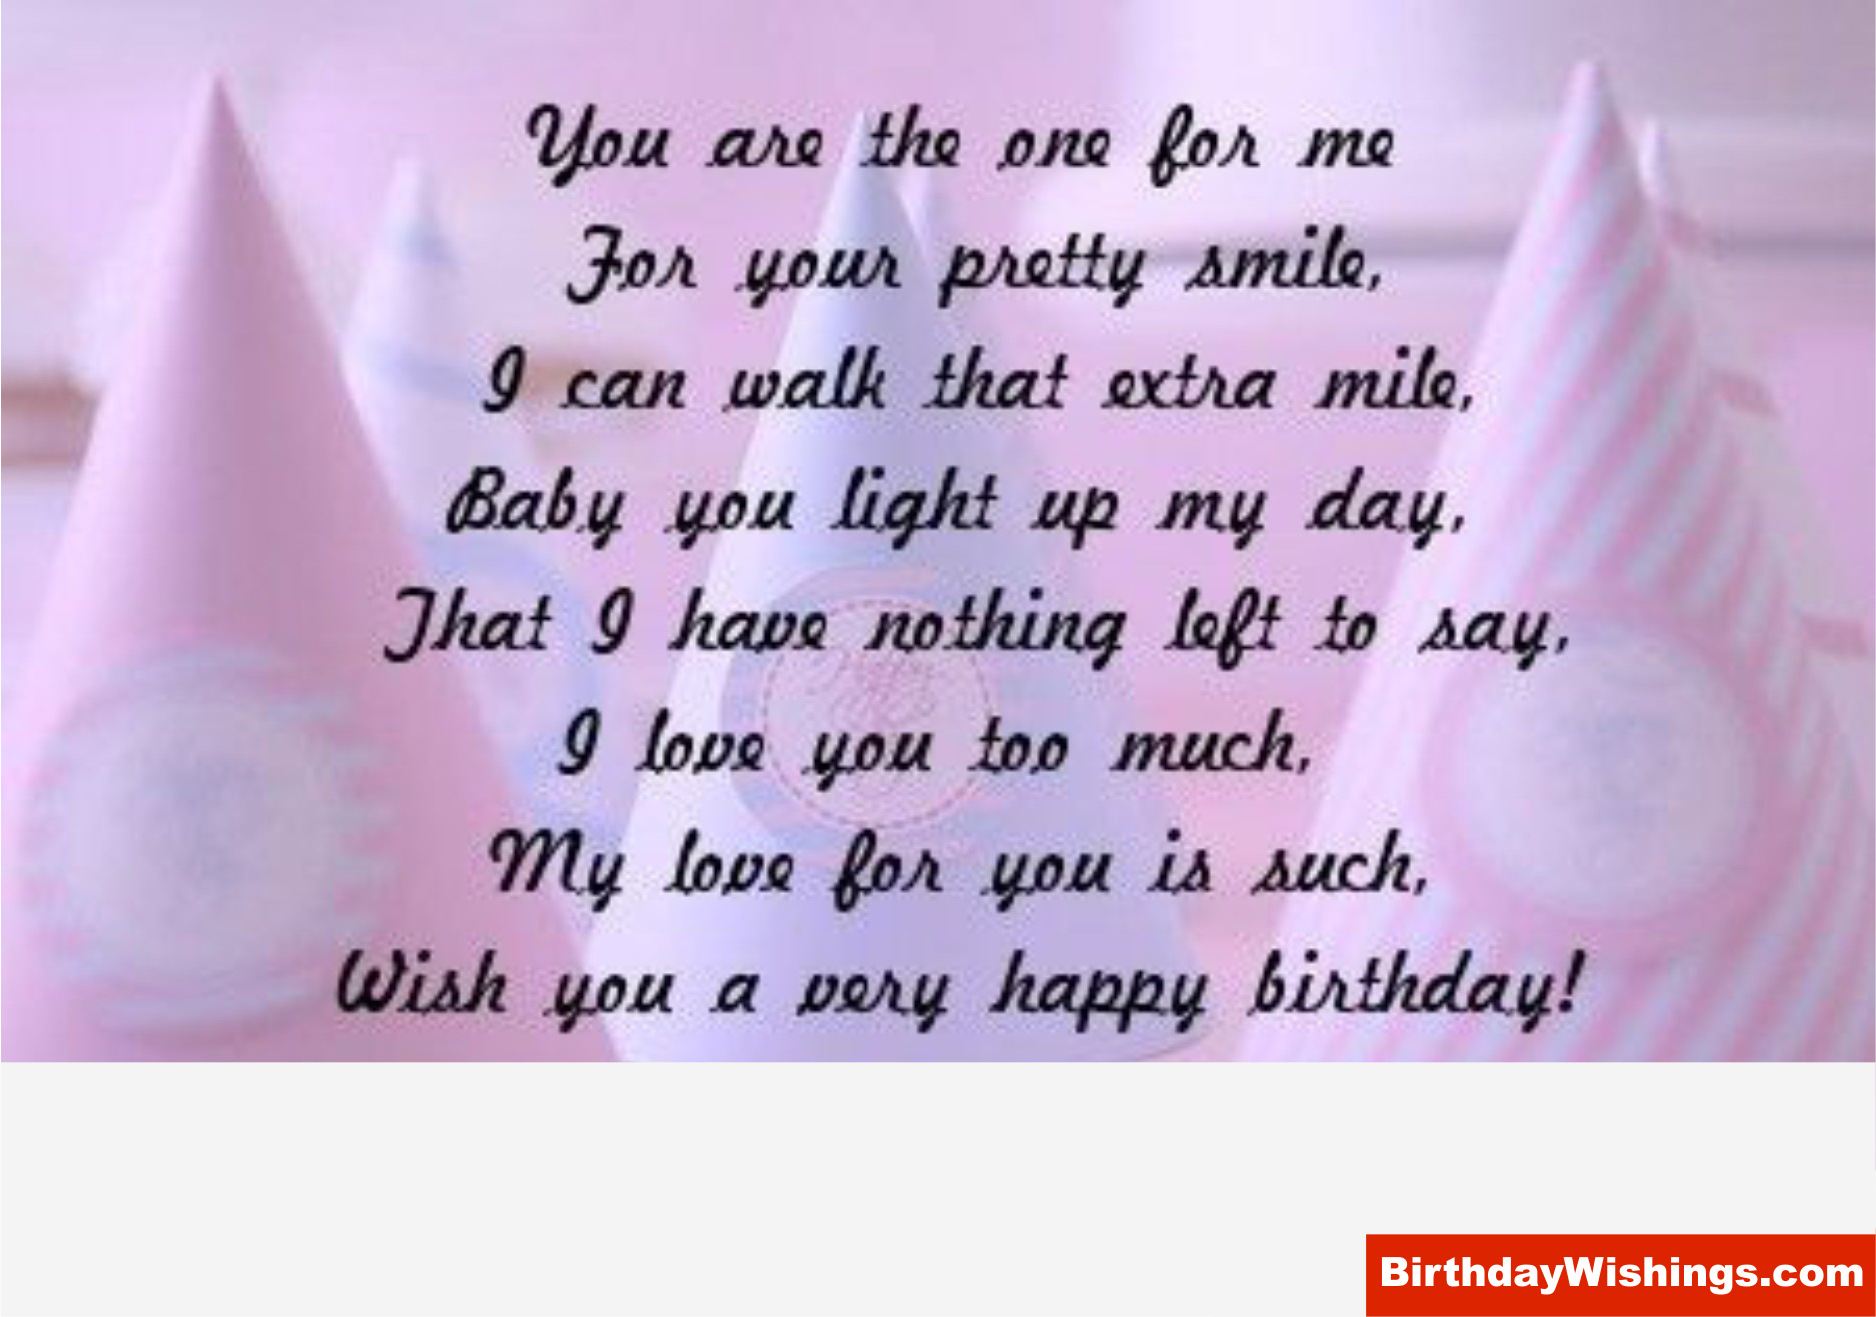 Birthday Poem For Some One Special Birthday Cards For Girlfriend